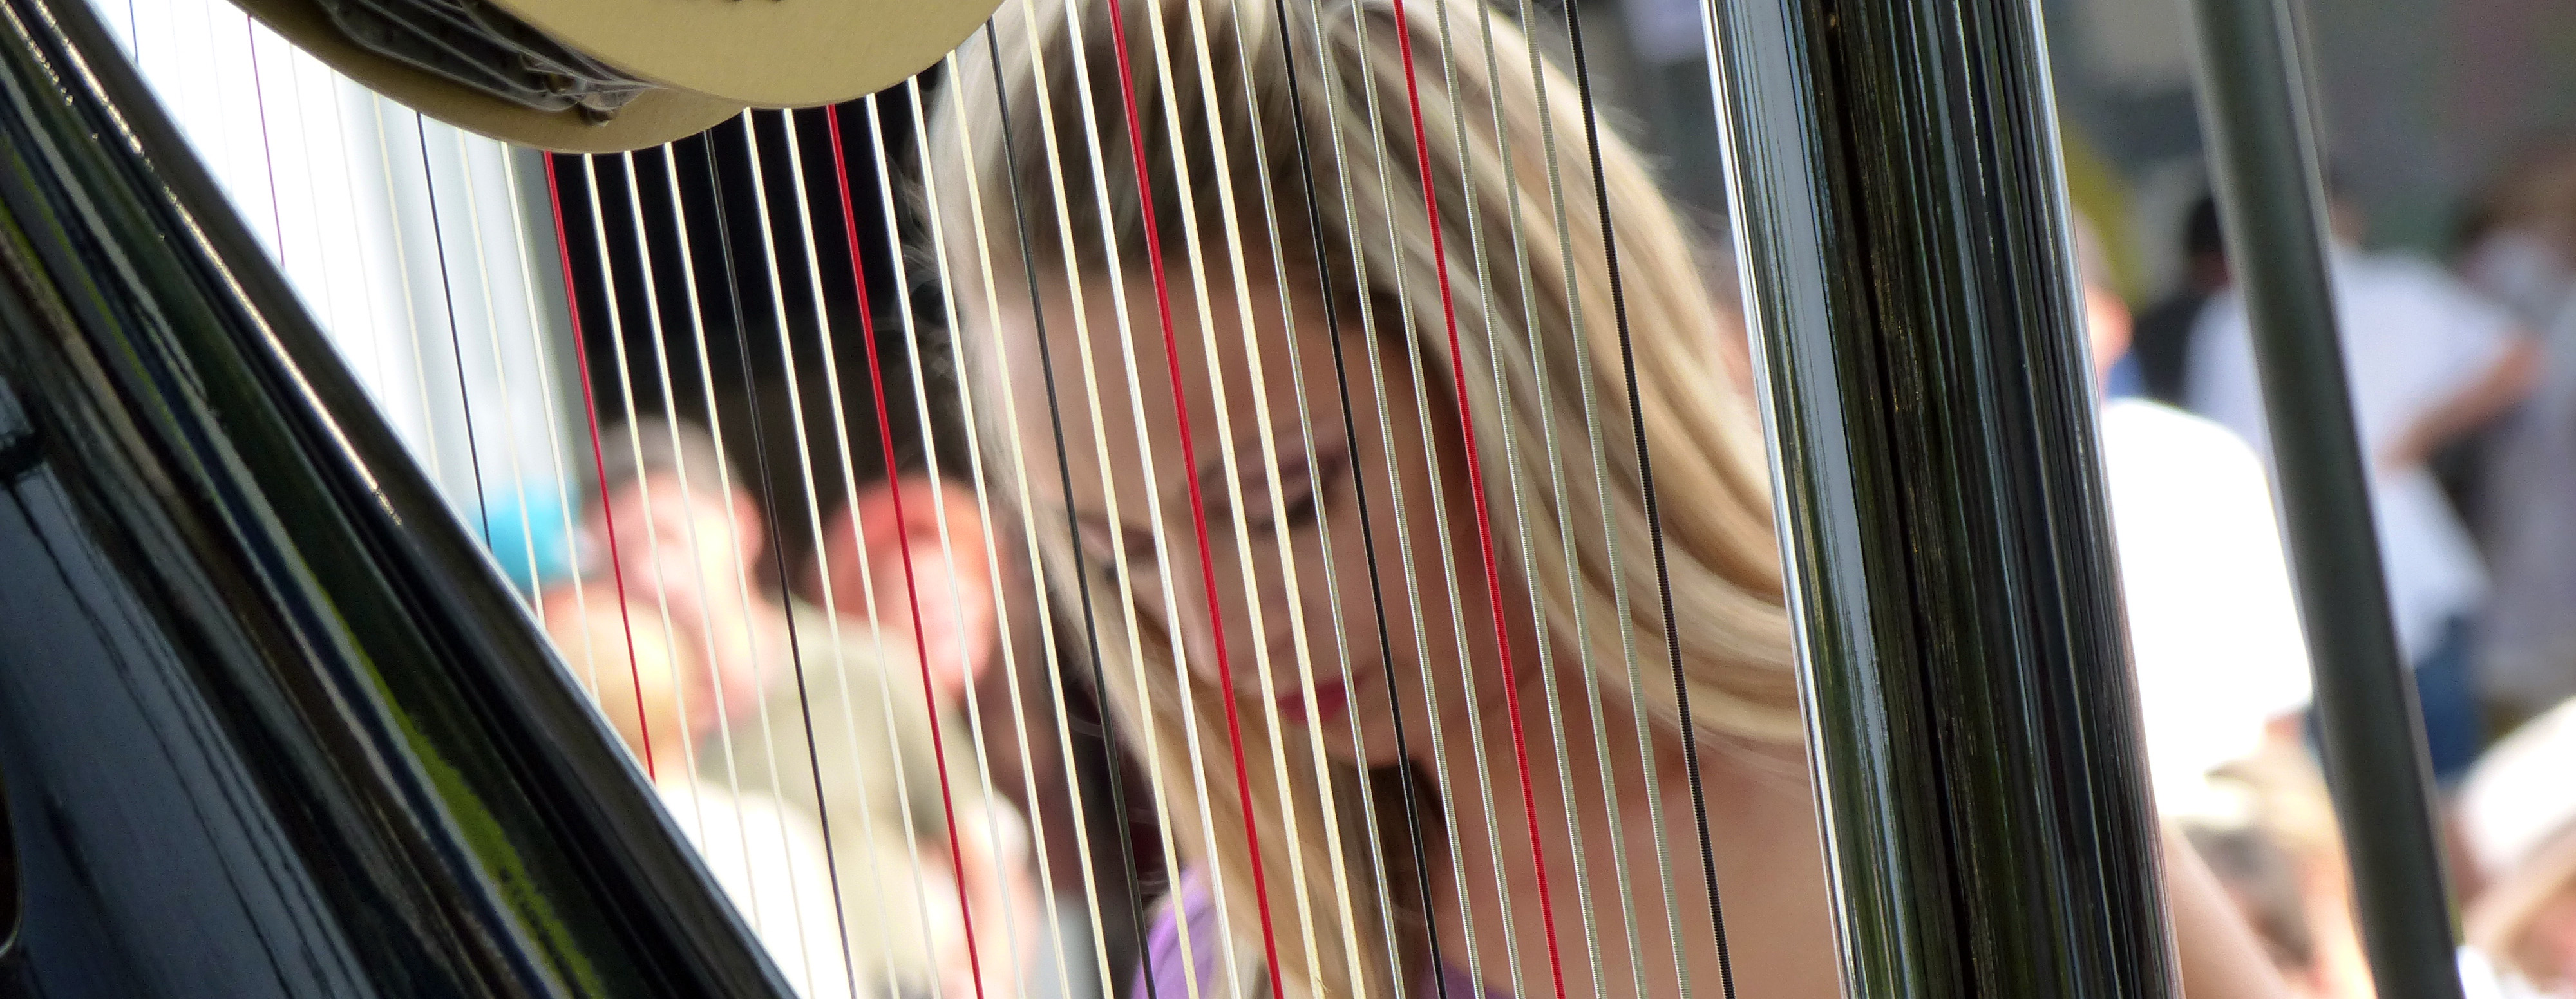 harpist jazz france europe